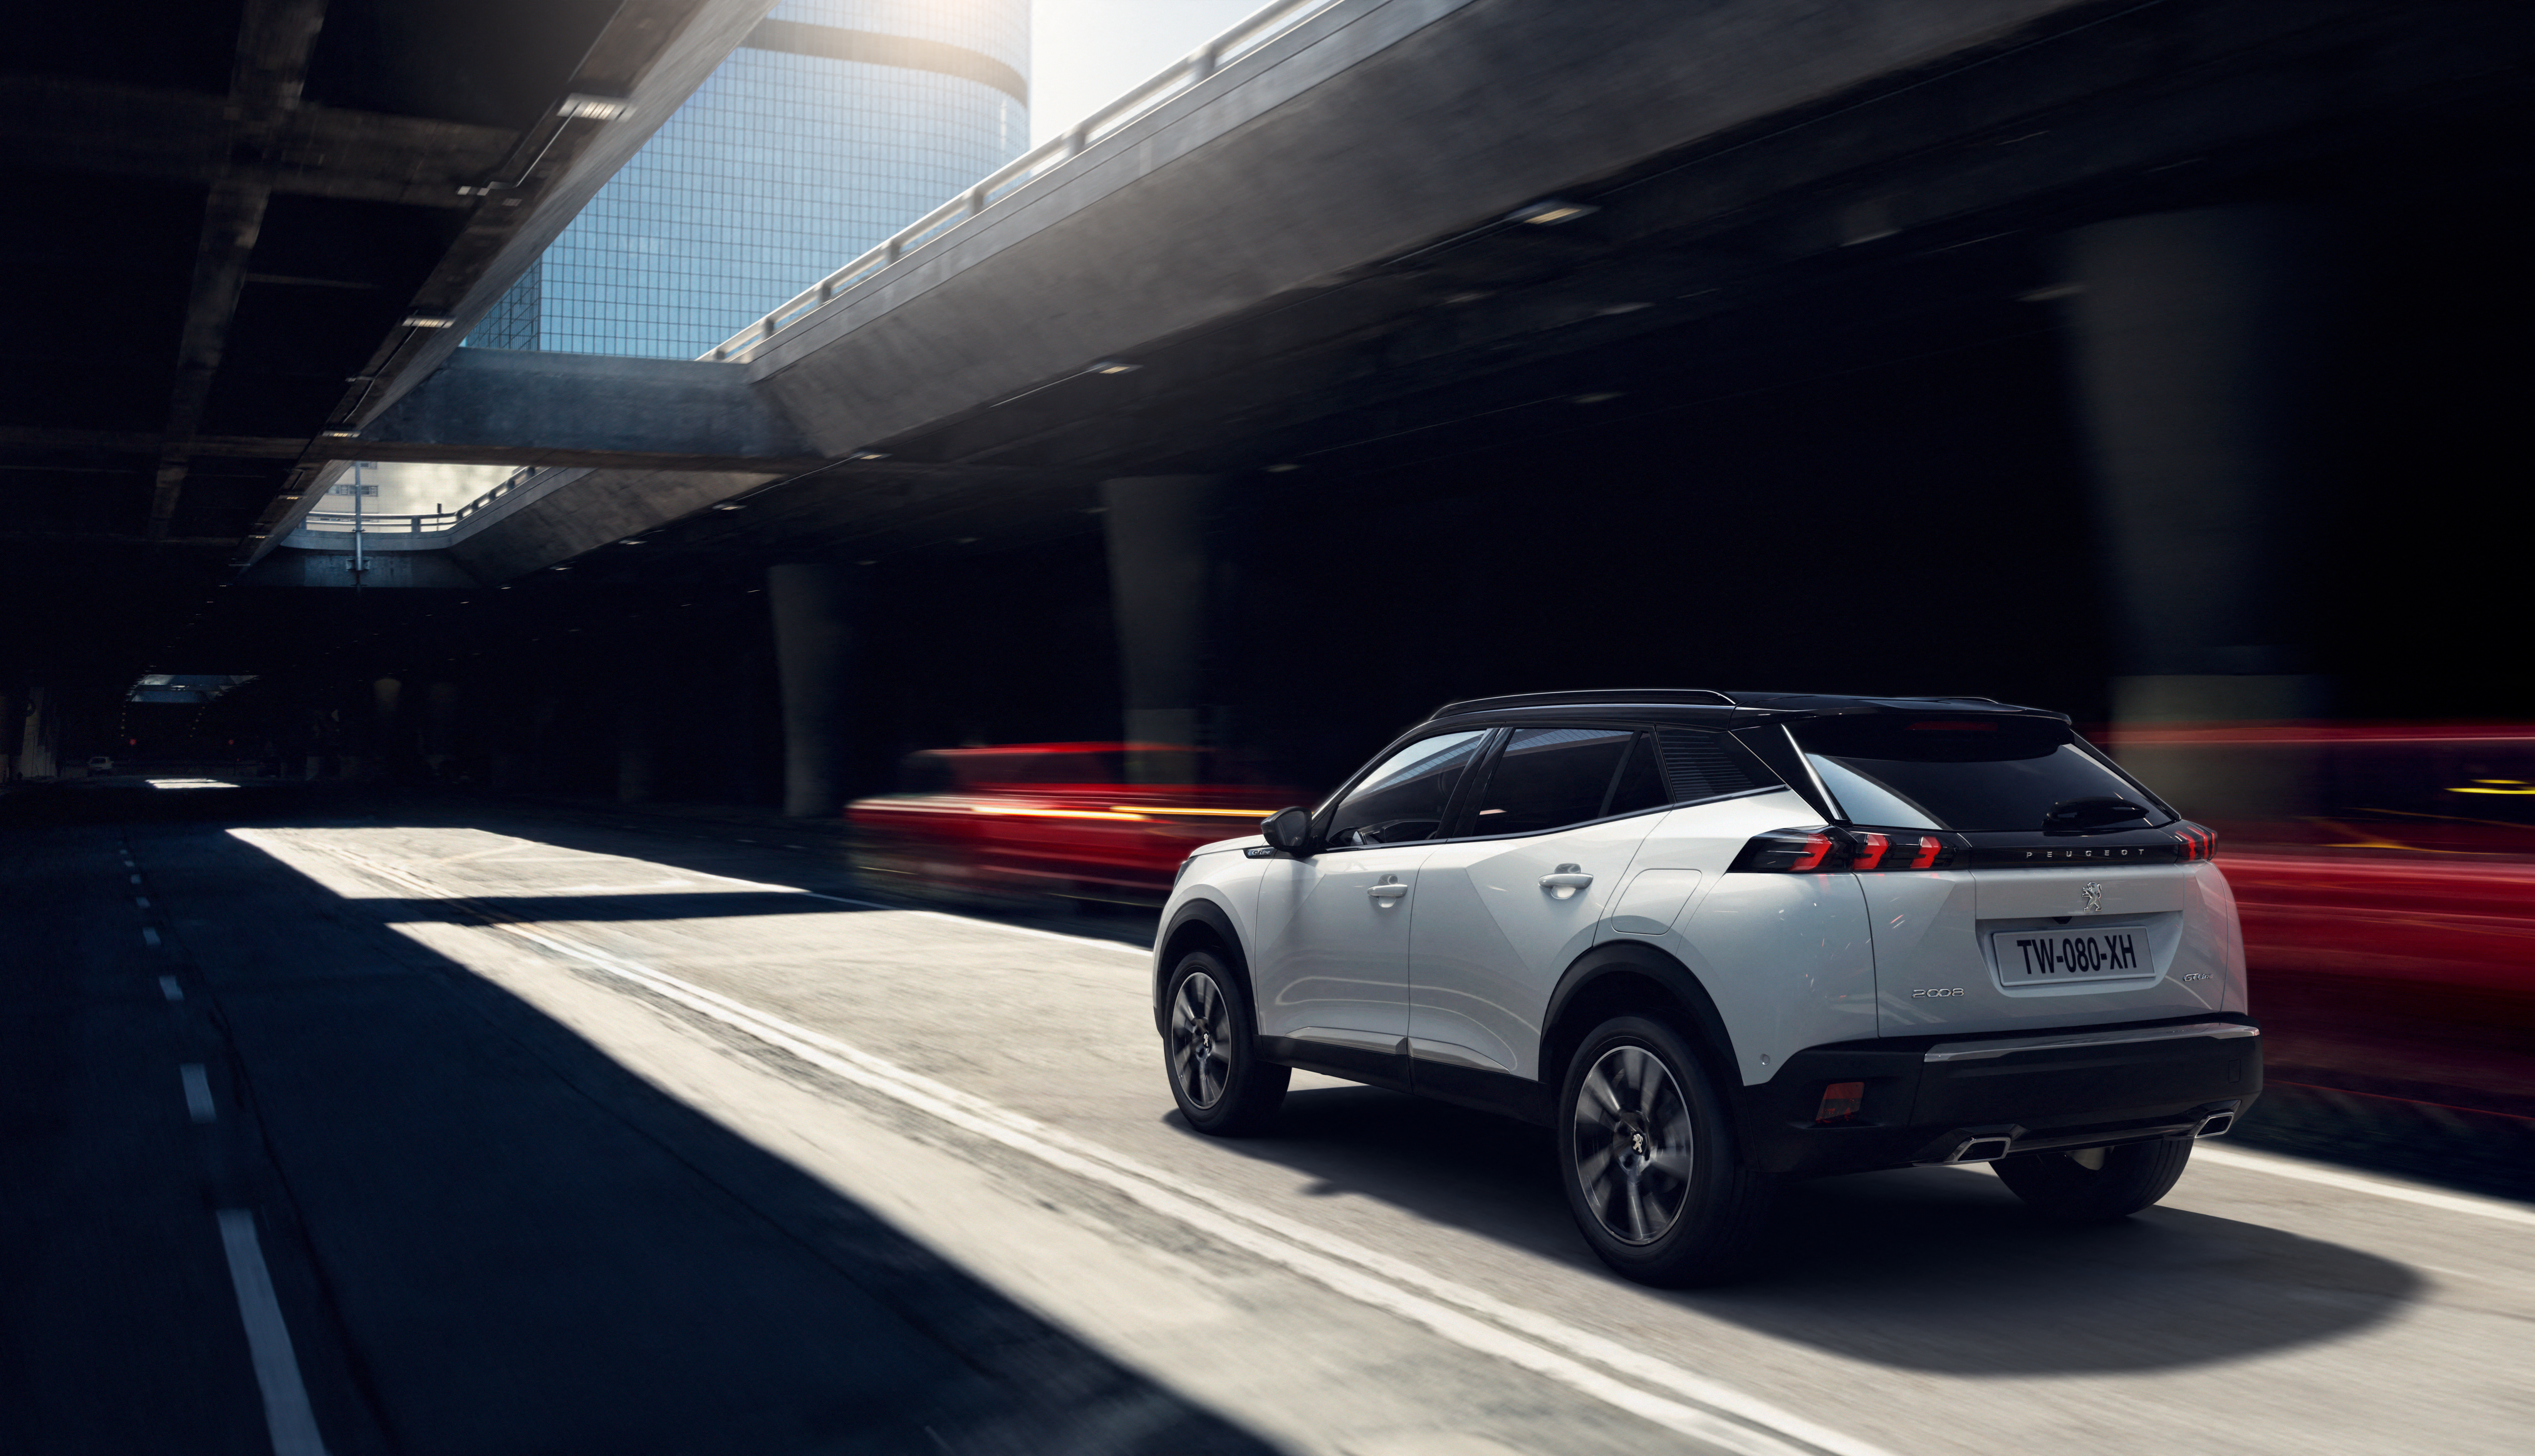 2019 Peugeot 2008 revealed – based on new 208 with lots of tech, electric e-2008 variant with 310 km range Image #975041